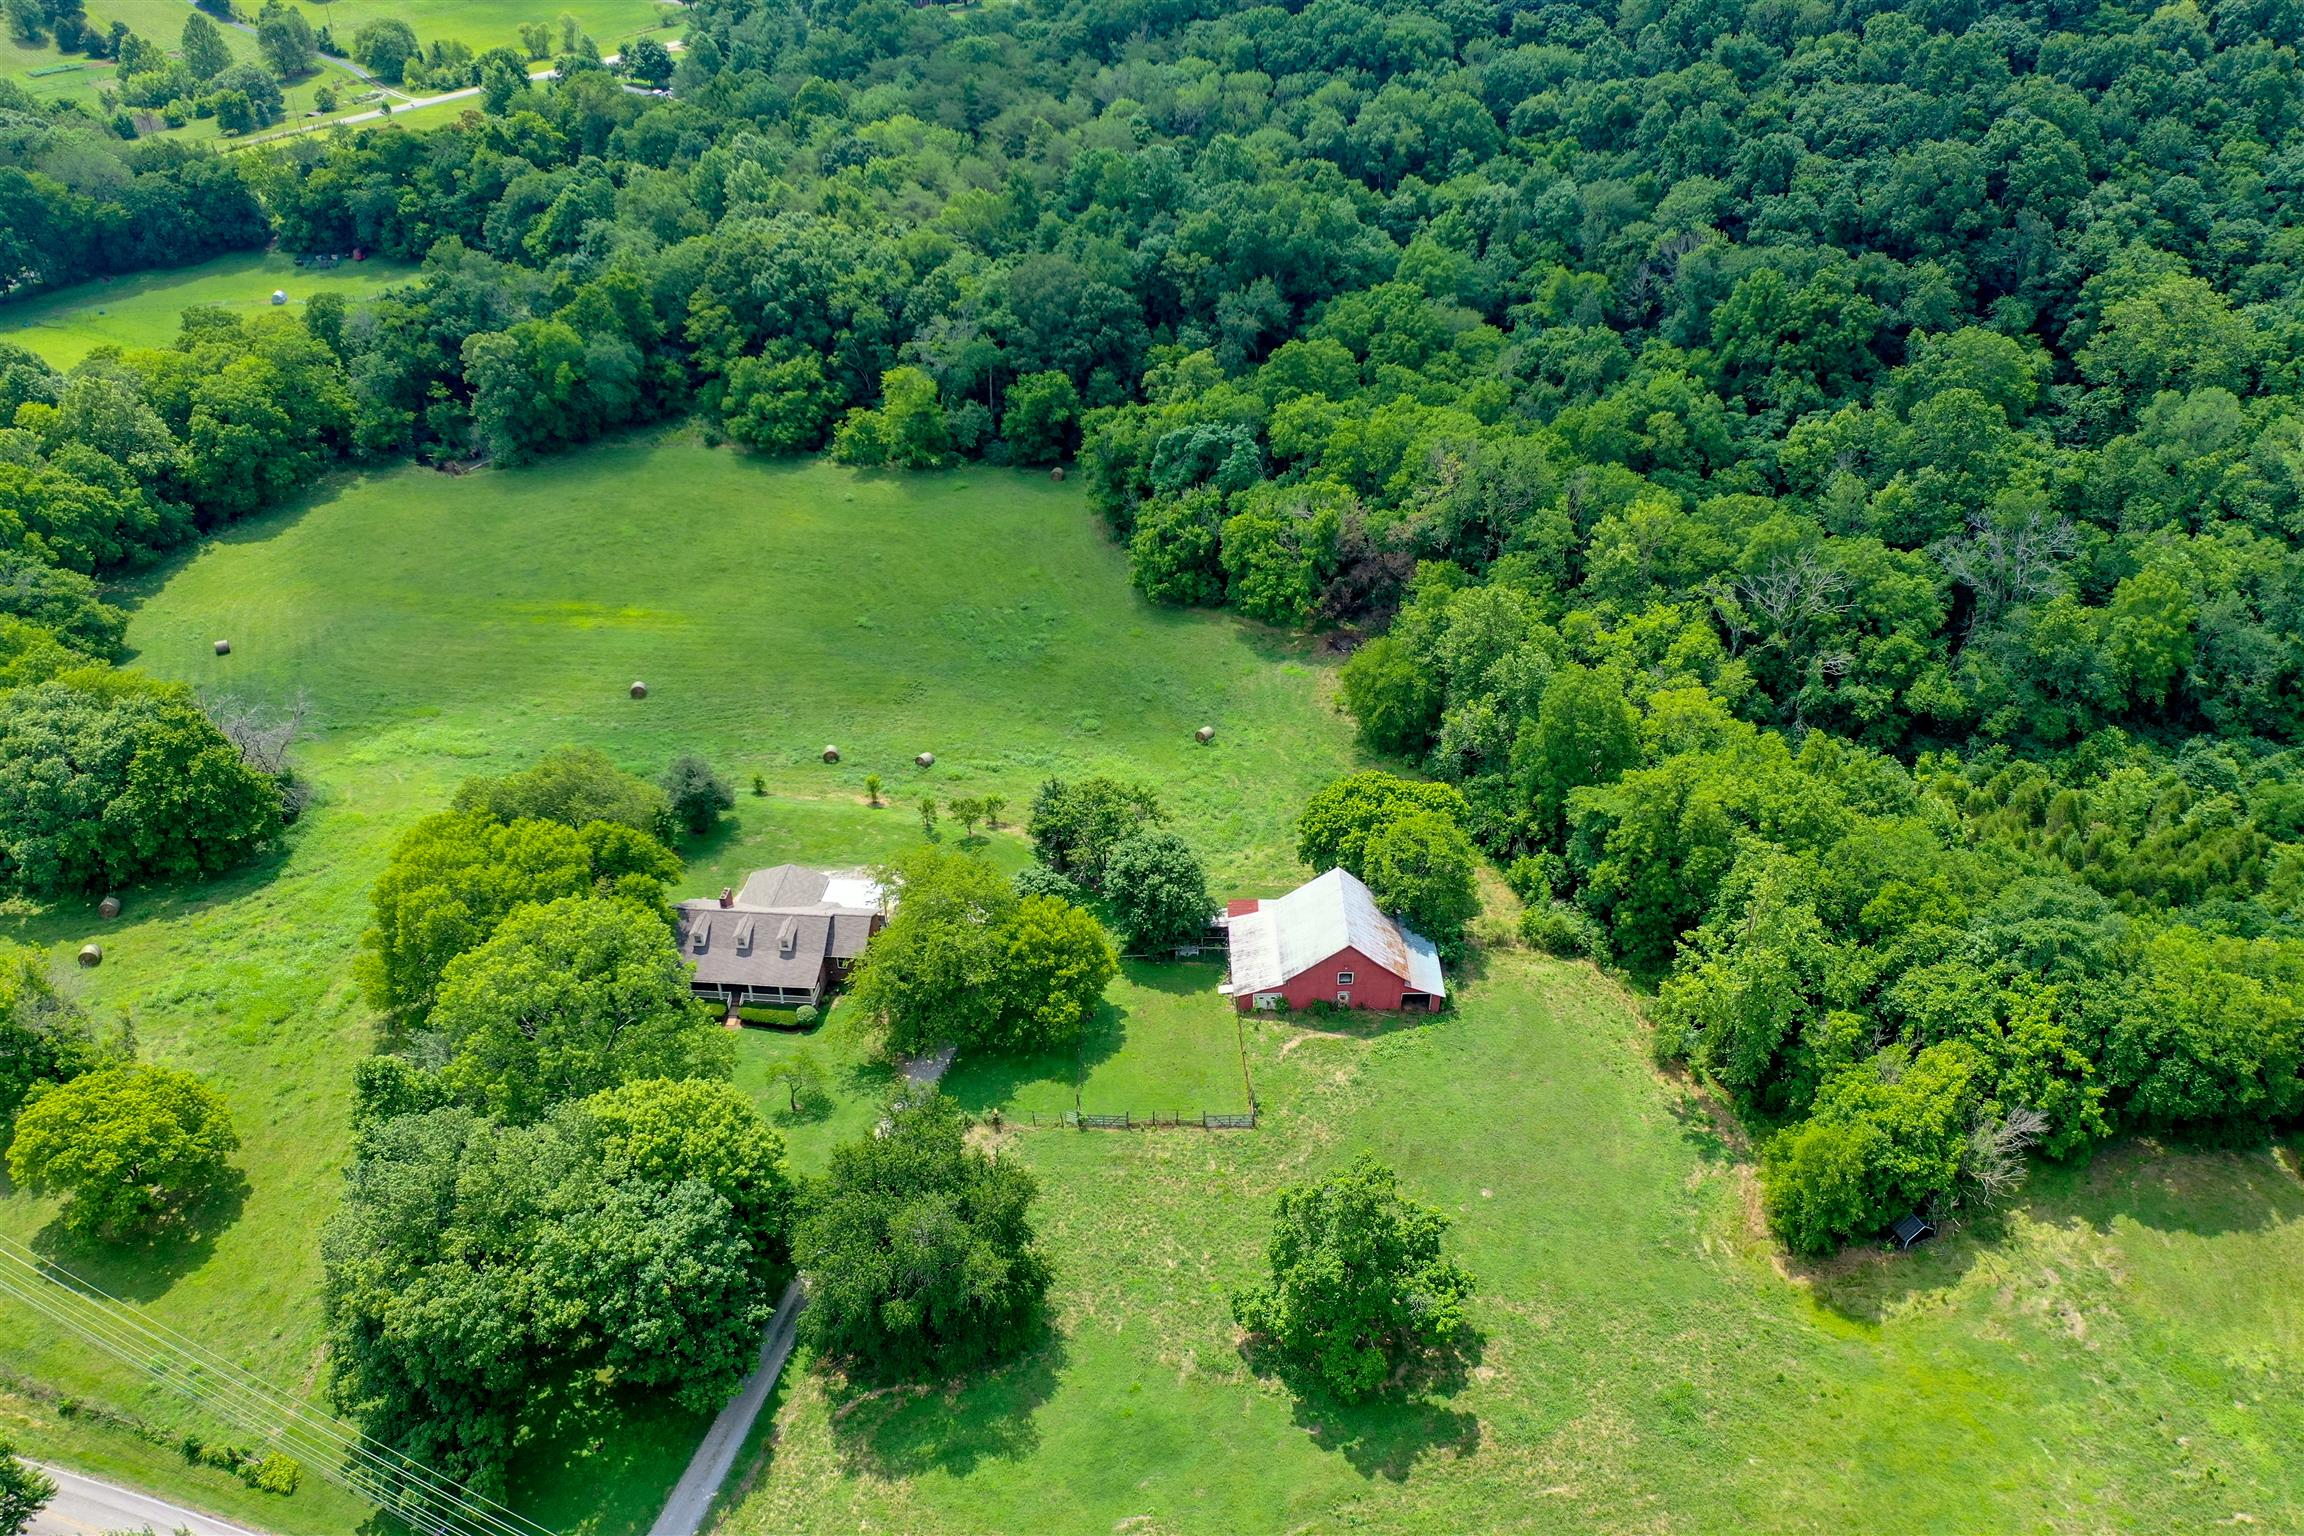 3087 Valley Creek Rd, Culleoka, TN 38451 - Culleoka, TN real estate listing